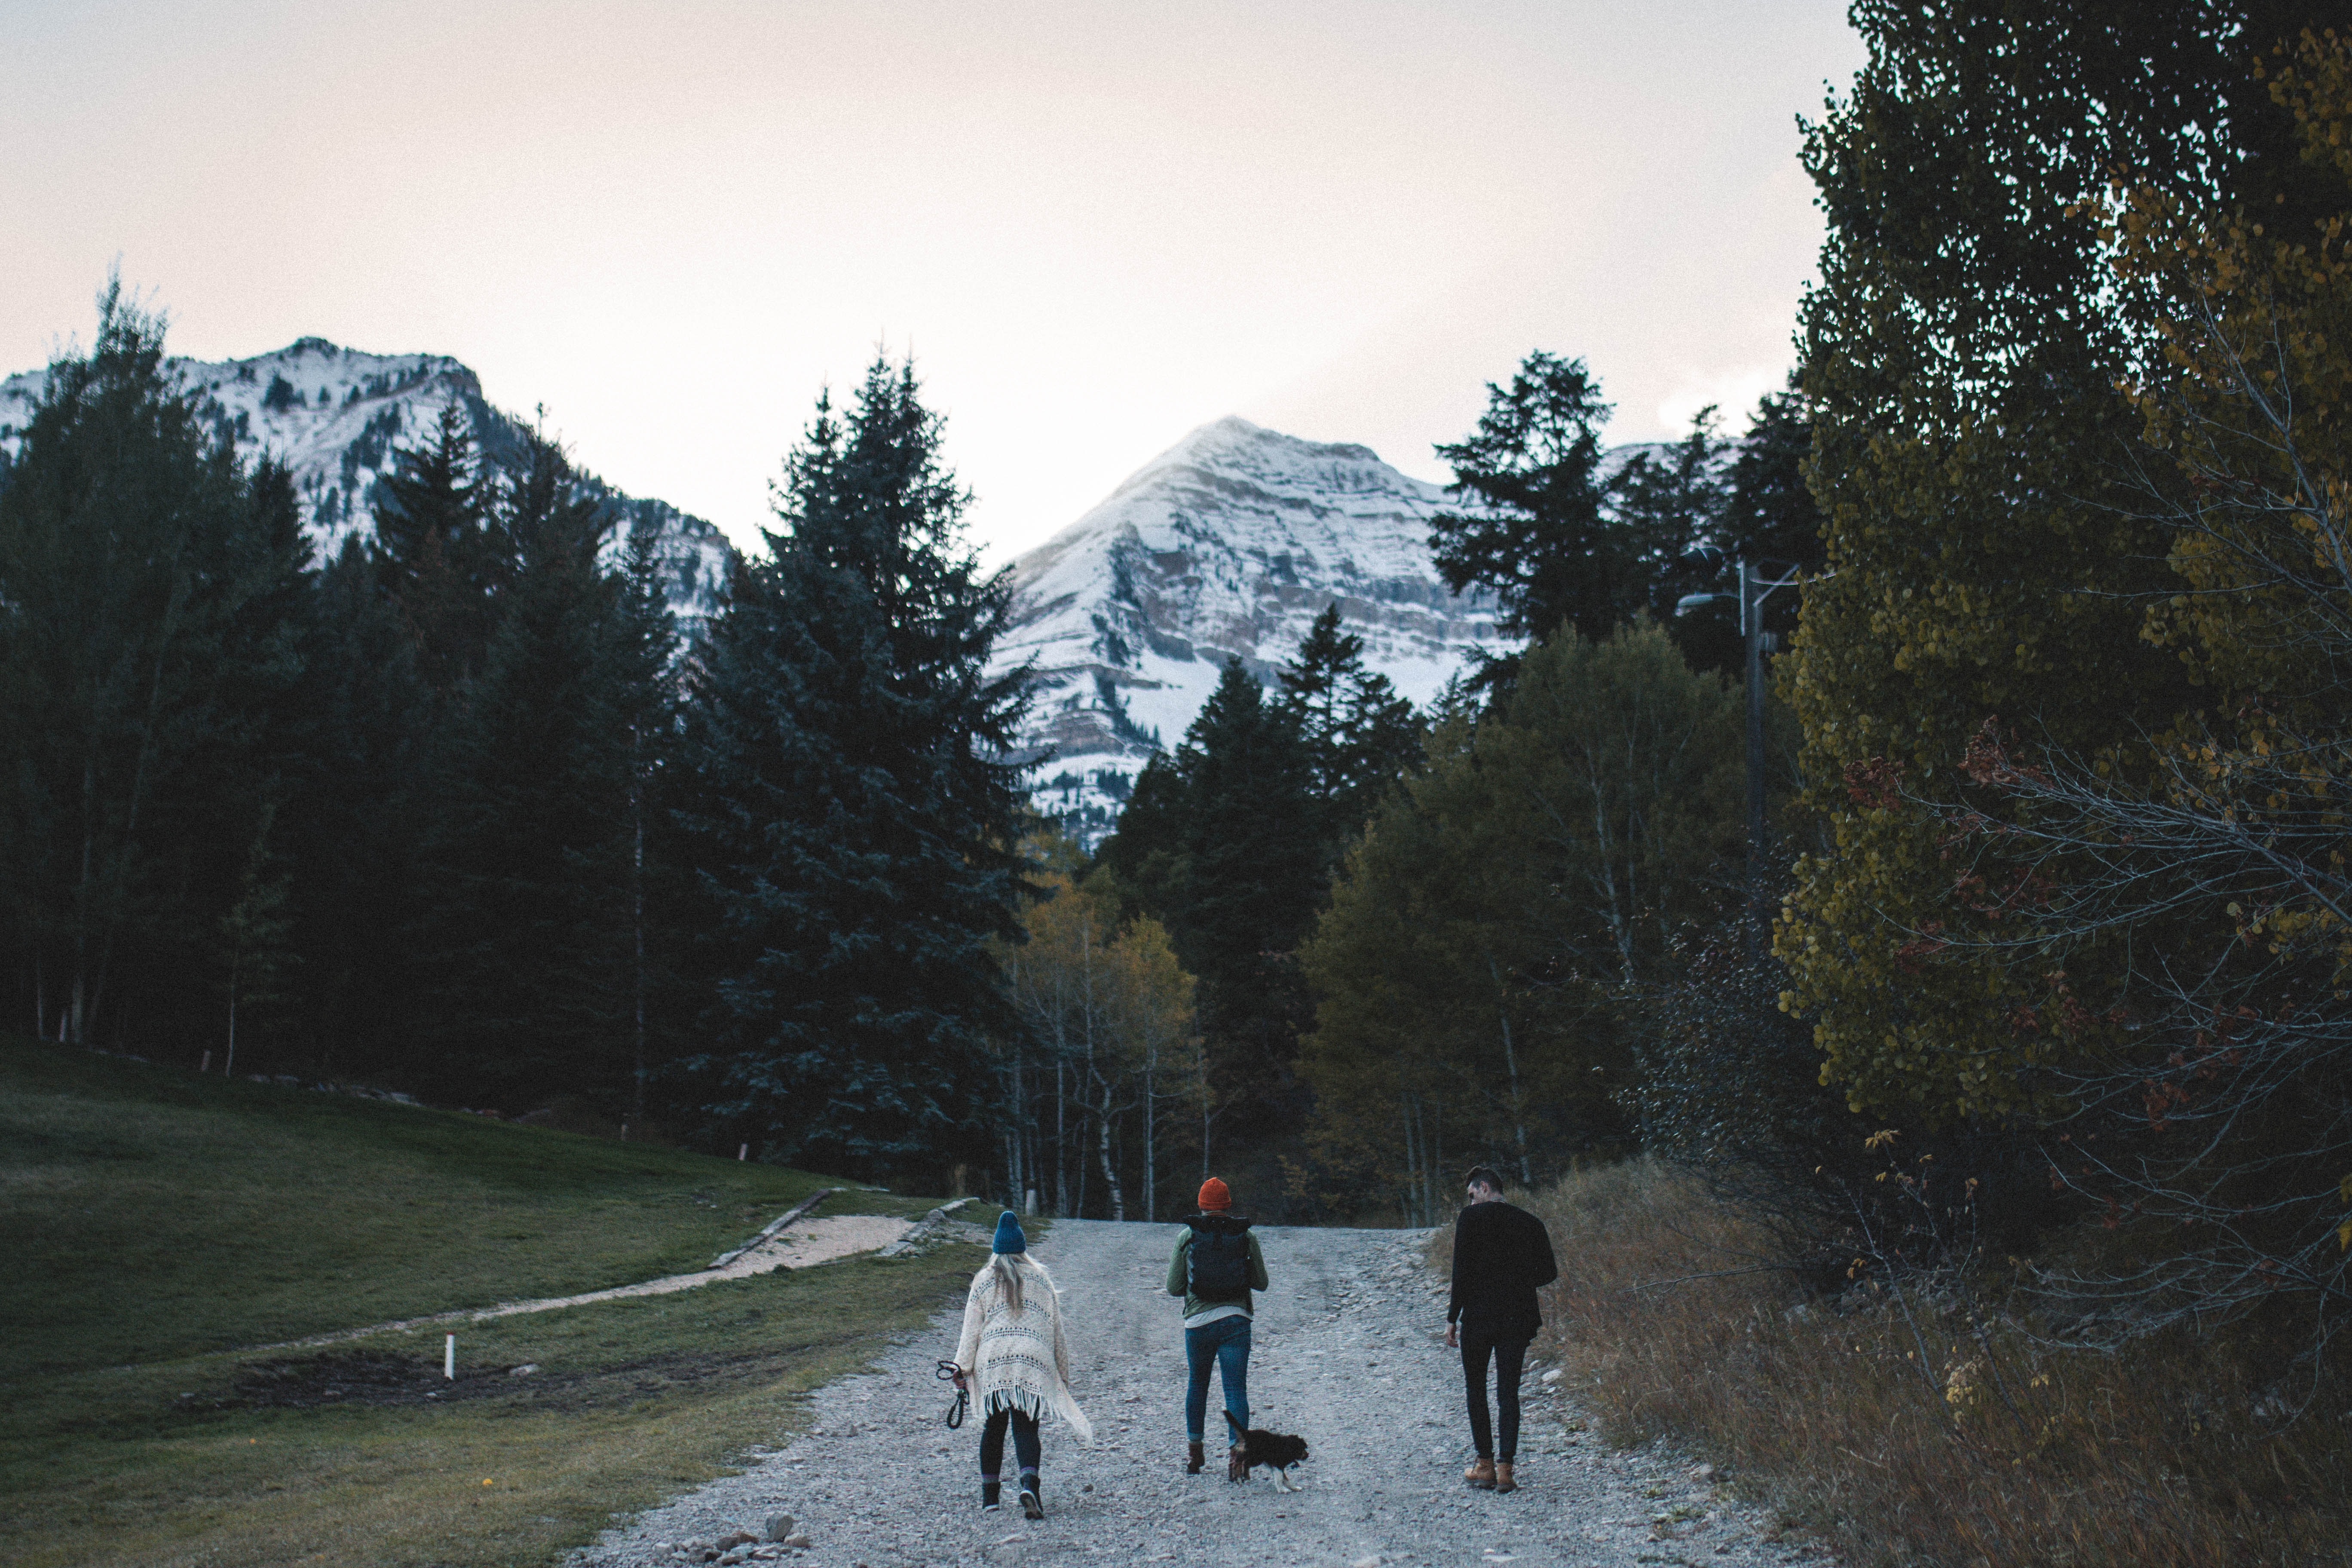 landscape photography of three person's walking on pathway